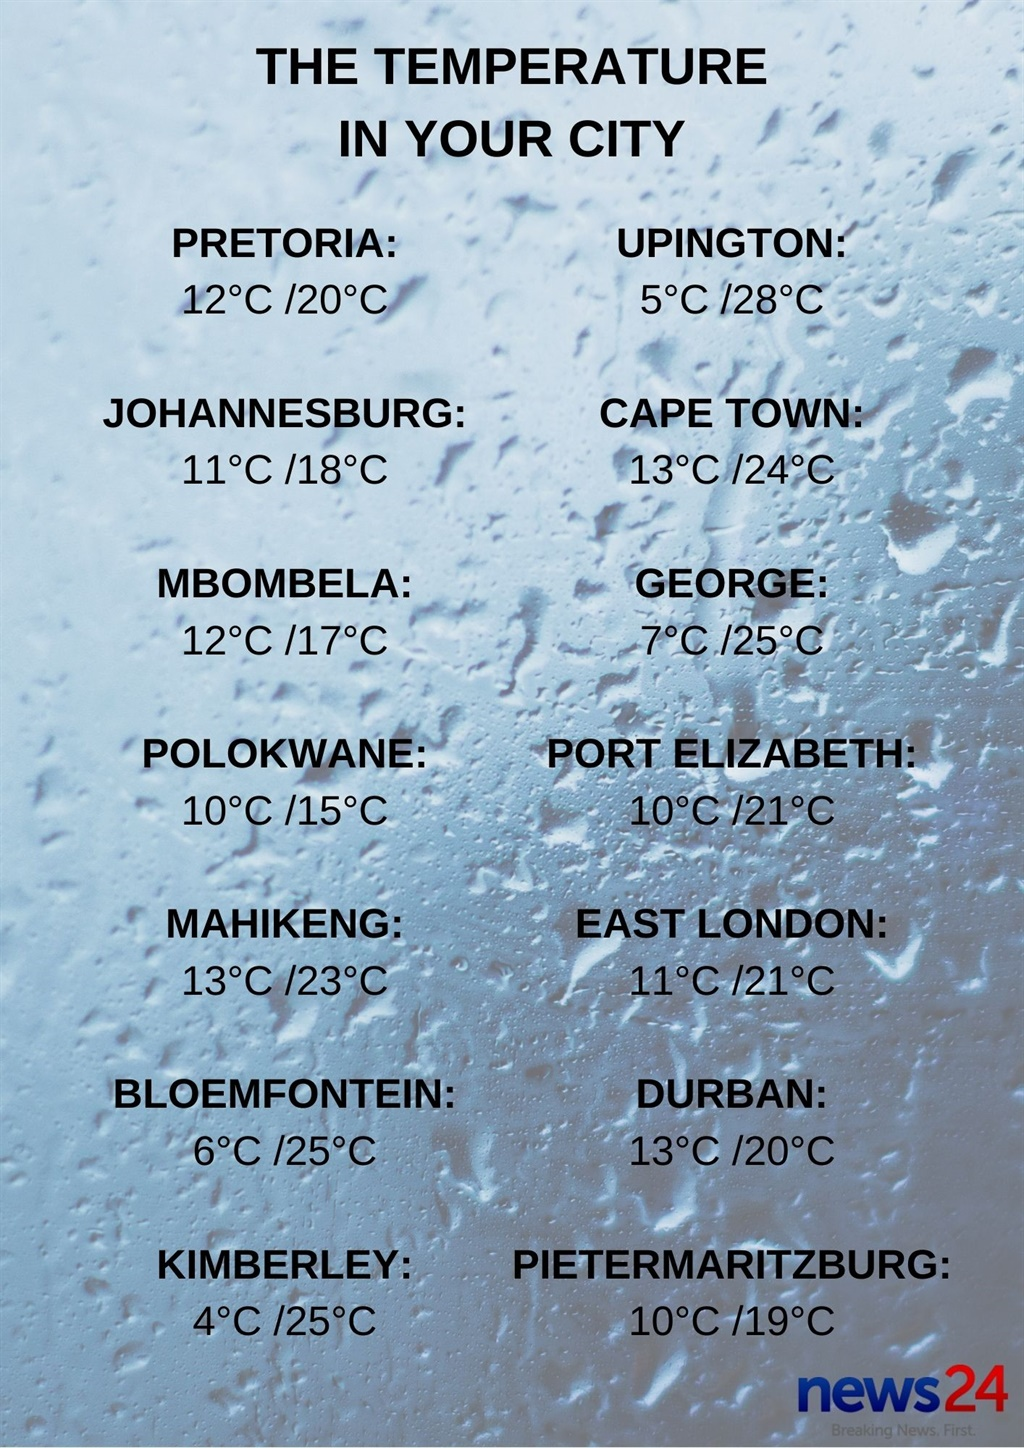 The temperatures in your city.